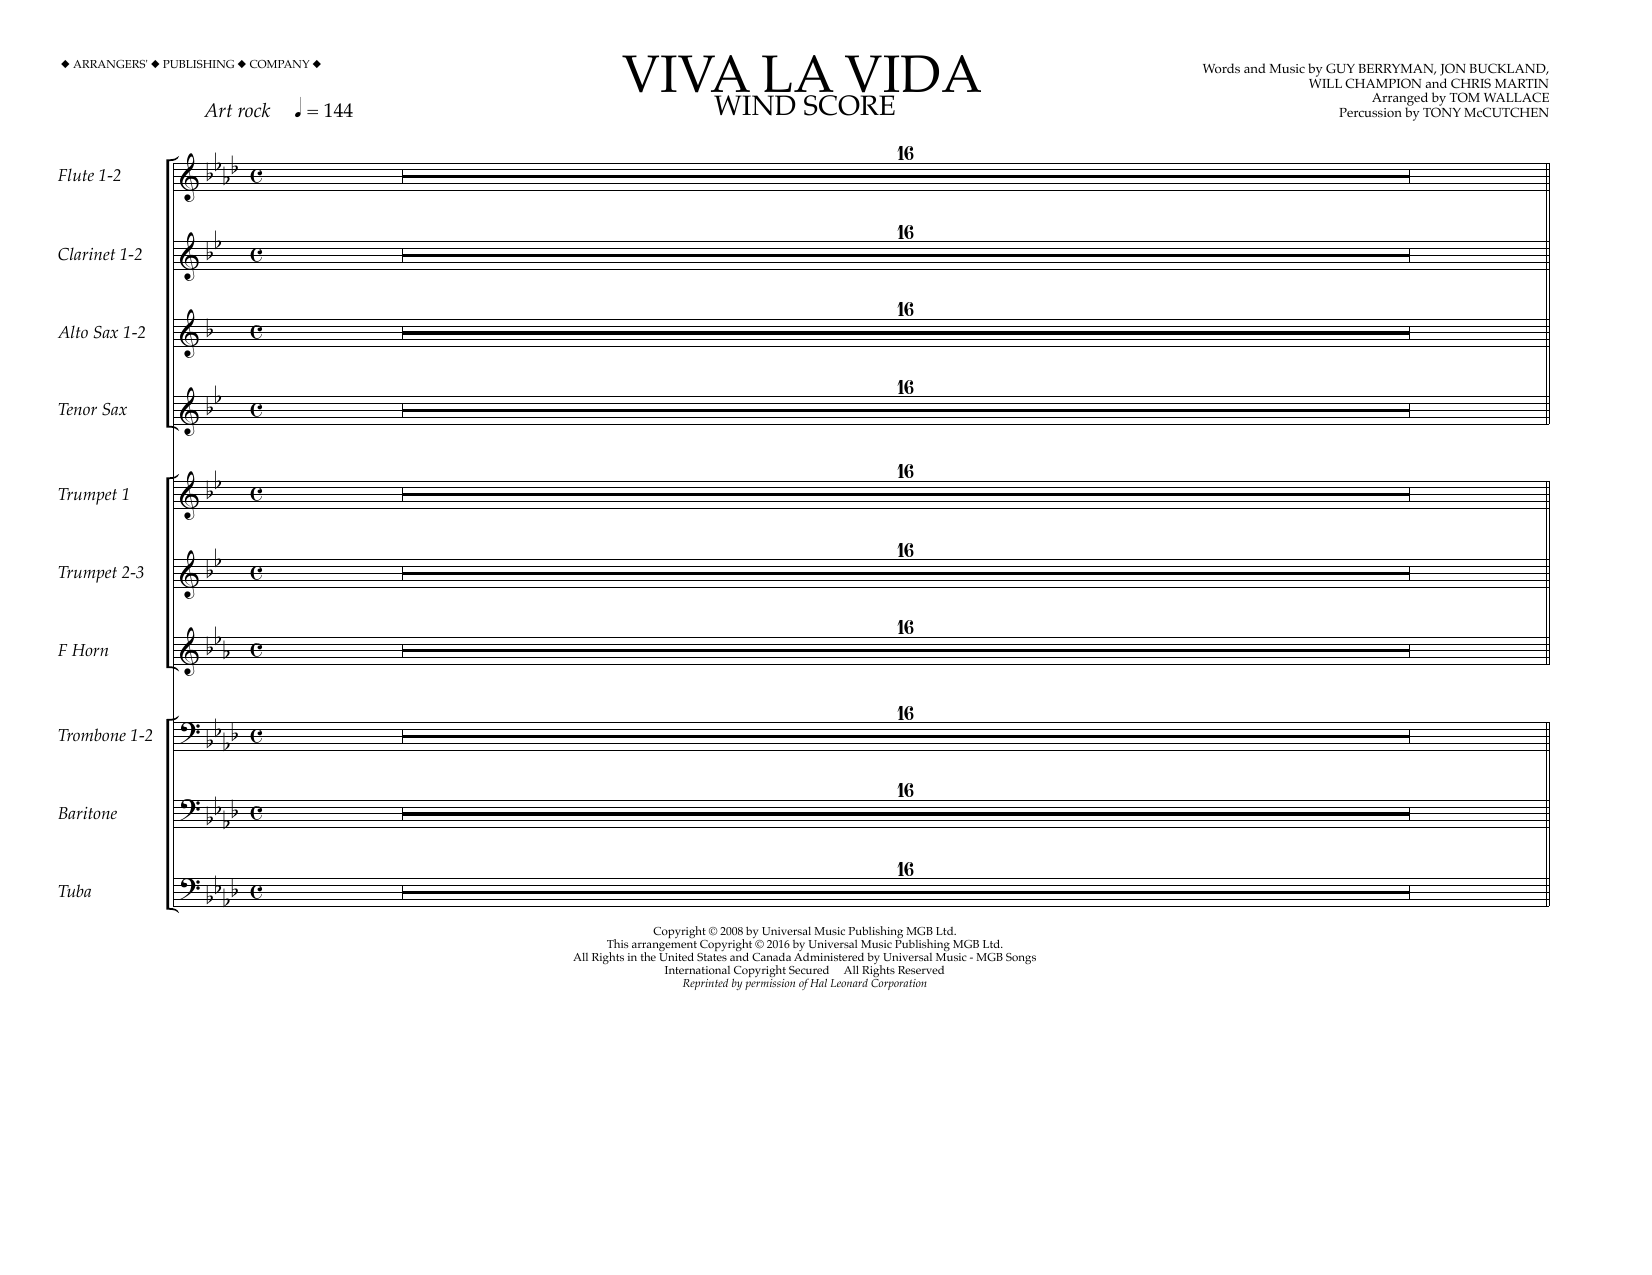 Coldplay - Viva La Vida - Wind Score